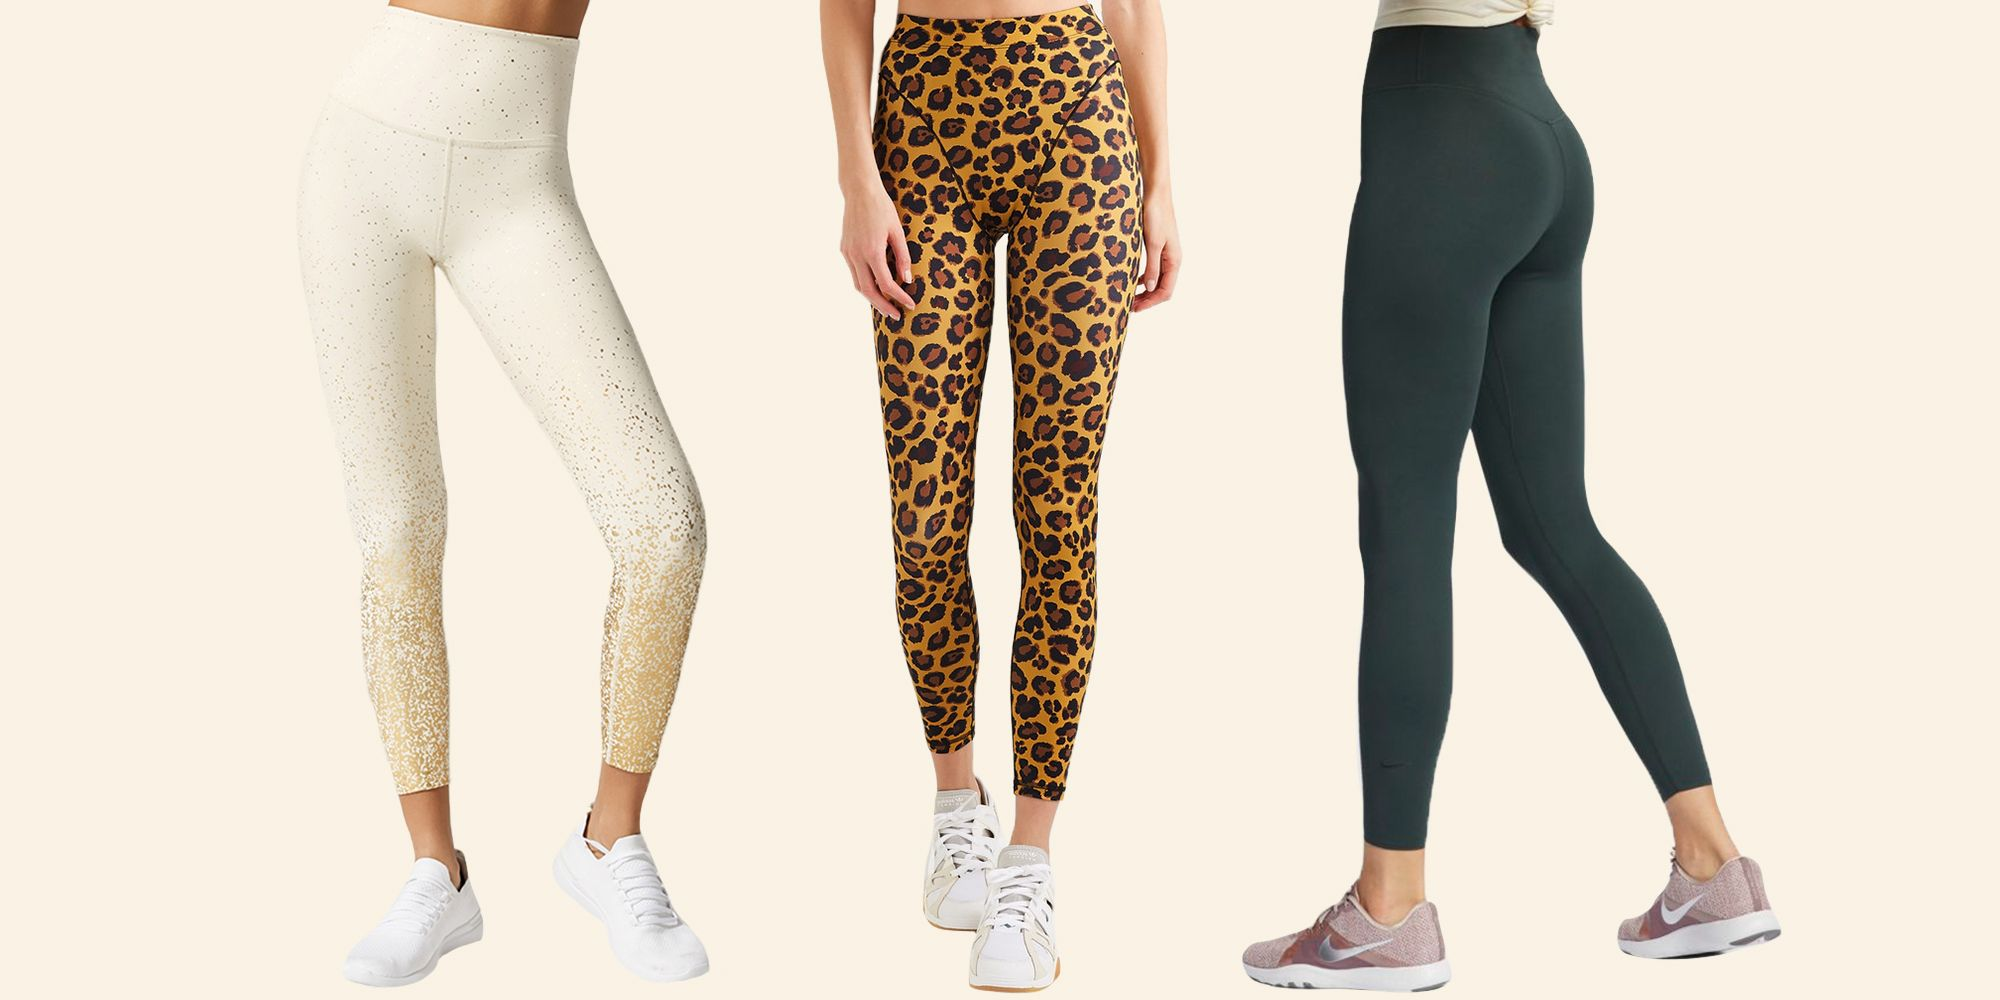 16 Pairs of Leggings You Can Wear to a Real or Fake Workout